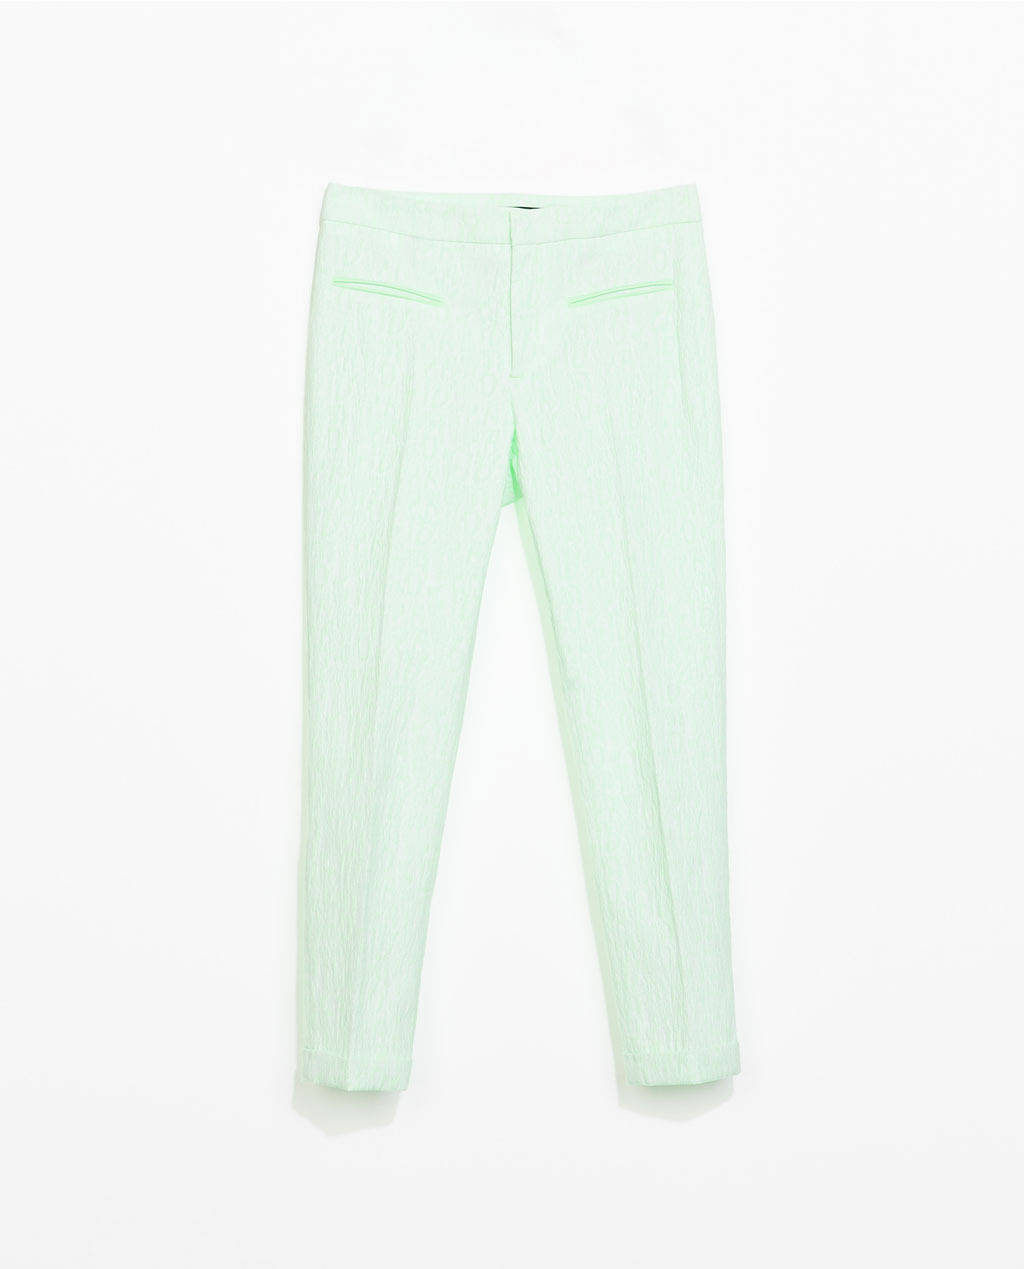 Jacquard Trousers With Faux Leather Piping - pattern: plain; waist: mid/regular rise; predominant colour: mint green; occasions: casual, evening, creative work; length: ankle length; fibres: cotton - stretch; fit: slim leg; pattern type: fabric; texture group: brocade/jacquard; style: standard; trends: sorbet shades; season: s/s 2014